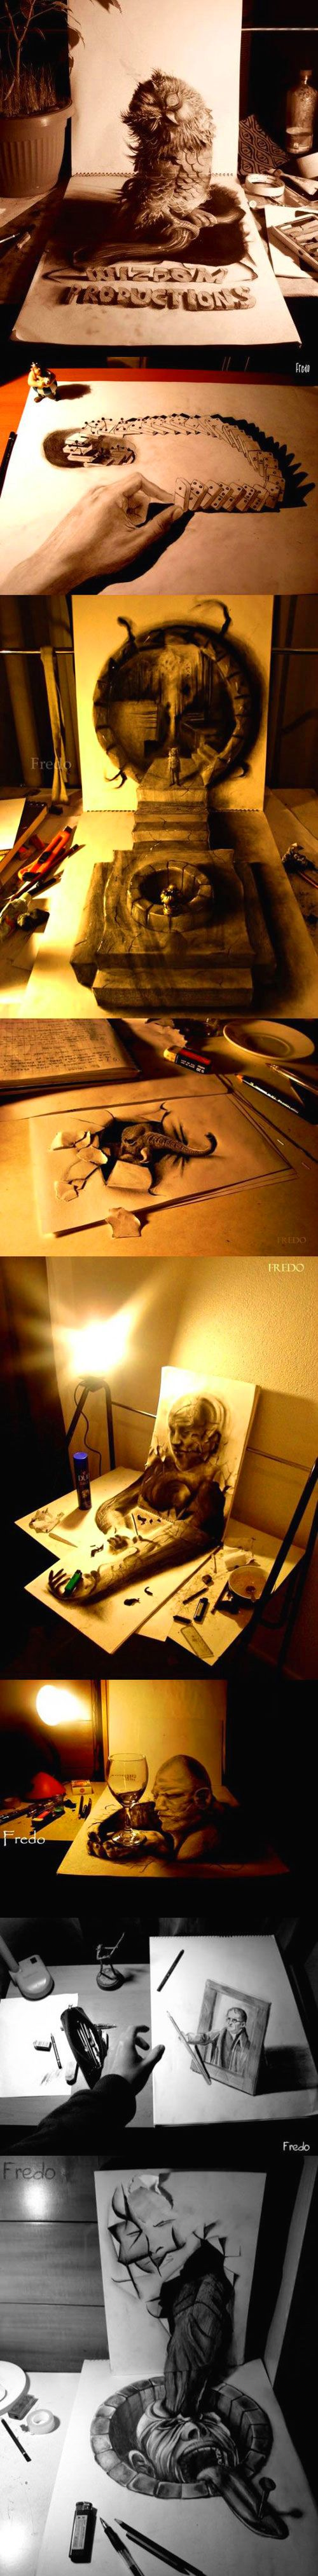 Mind-blowing 3D pencil drawings.